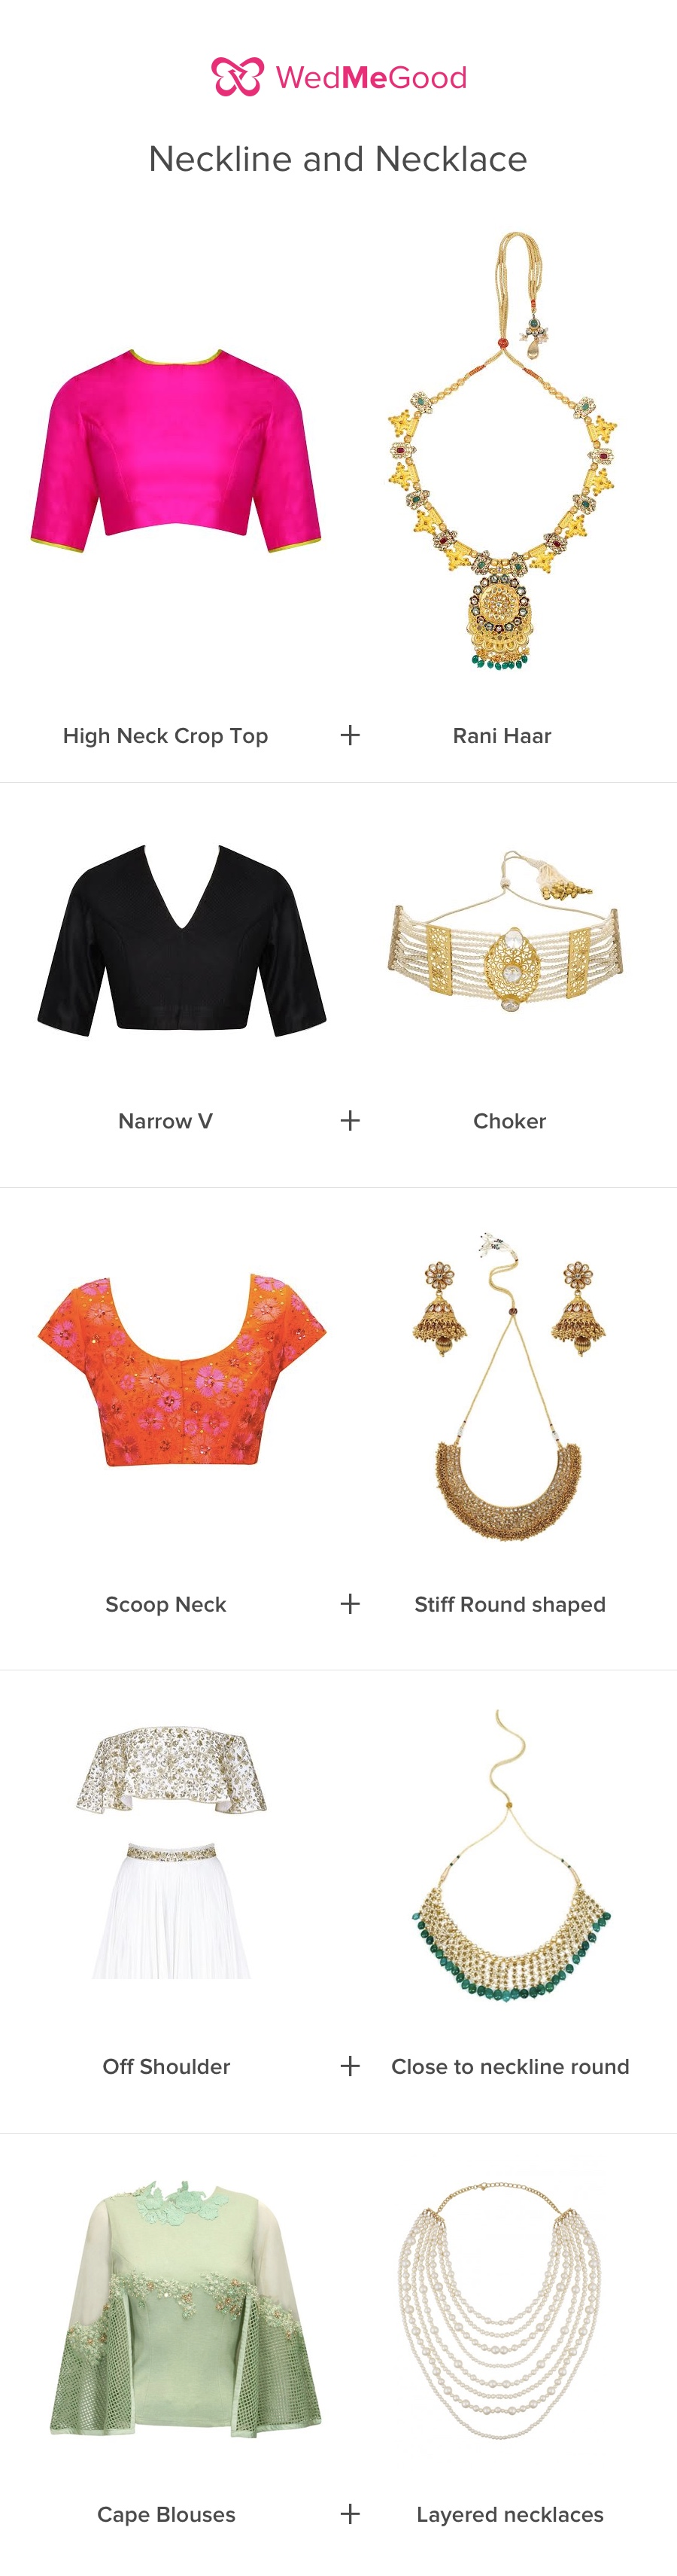 Therulebook How To Pick The Right Jewellery For Your Neckline Wedmegood